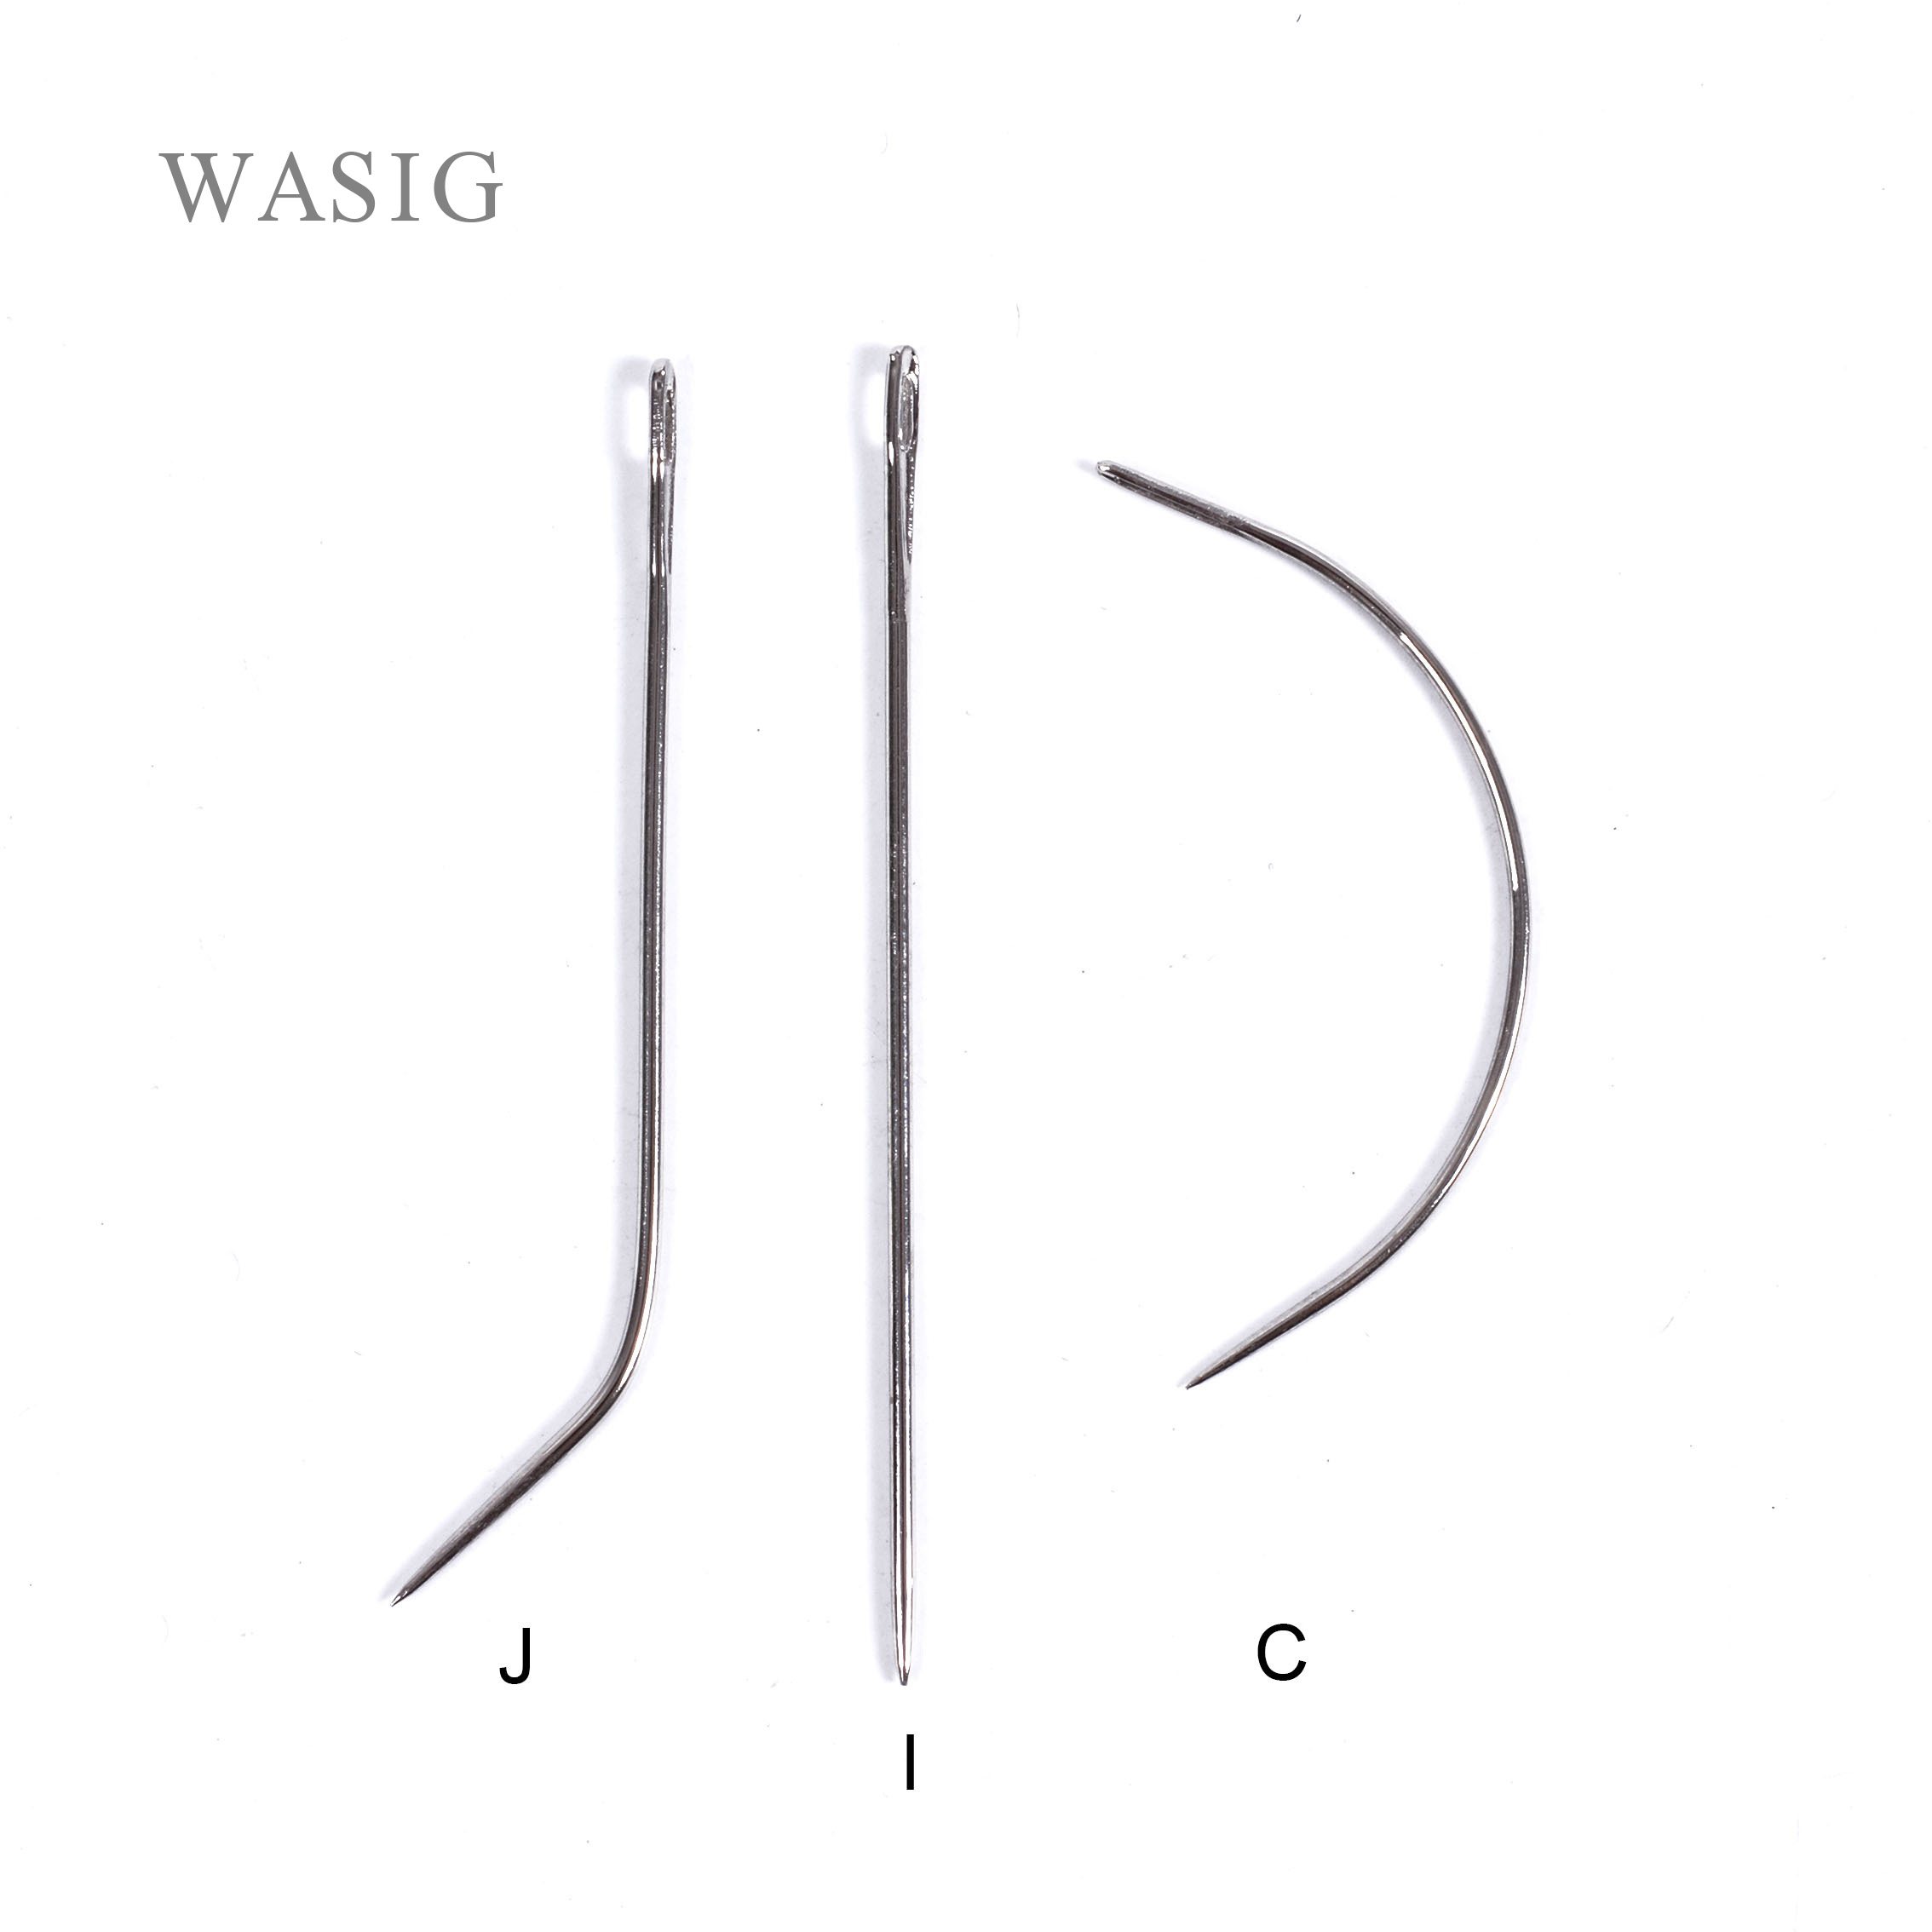 6 Cm 12pcs C J I Mix TYPE Curved Needles Hair Weaving Thread/Sewing Needles For Hair Extension Tool Ordinary Small Packet